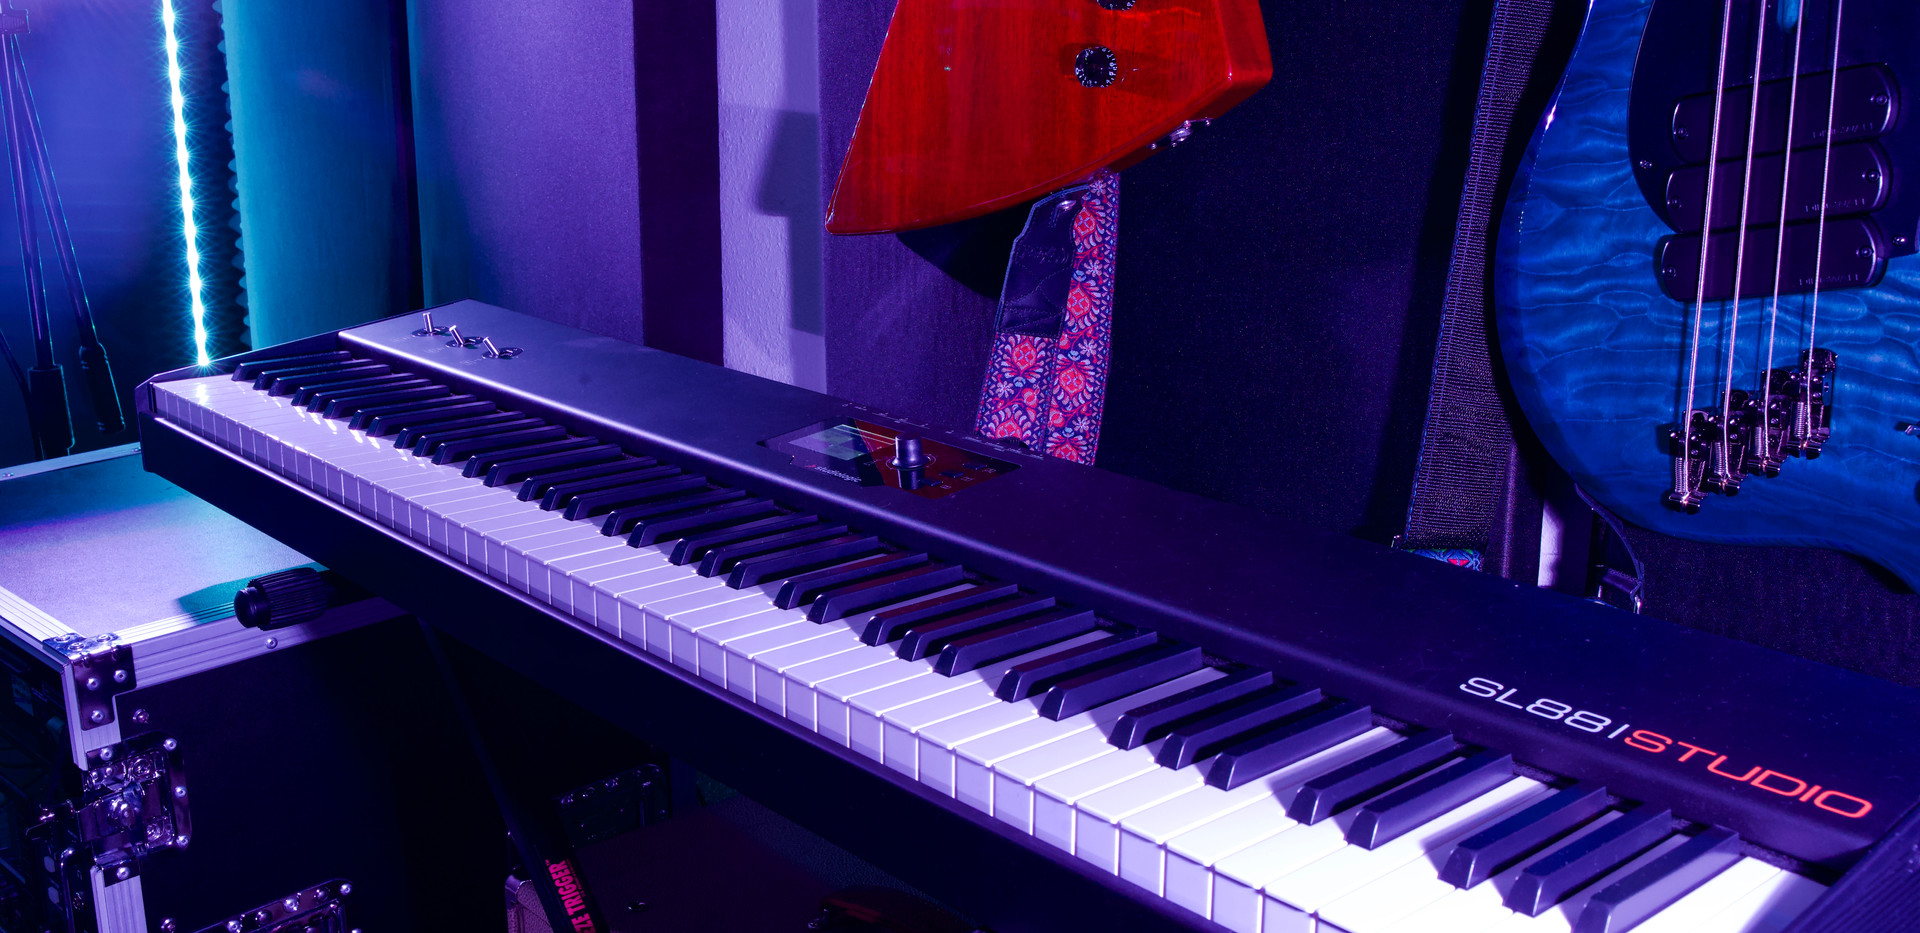 Our 88 weighted key midi keyboard